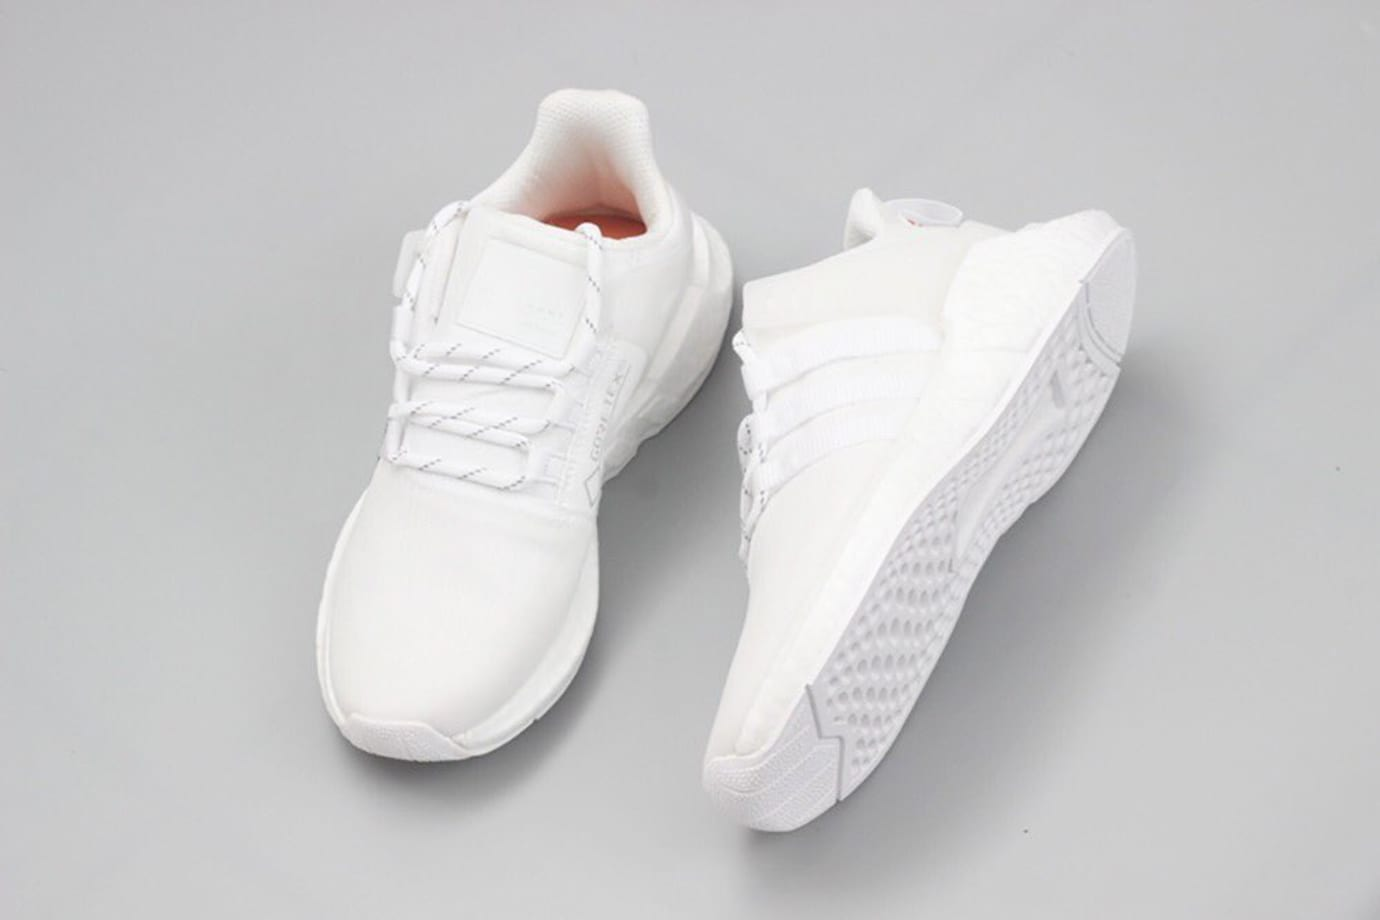 Adidas EQT Support 93/17 Gore-Tex White Release Date Top